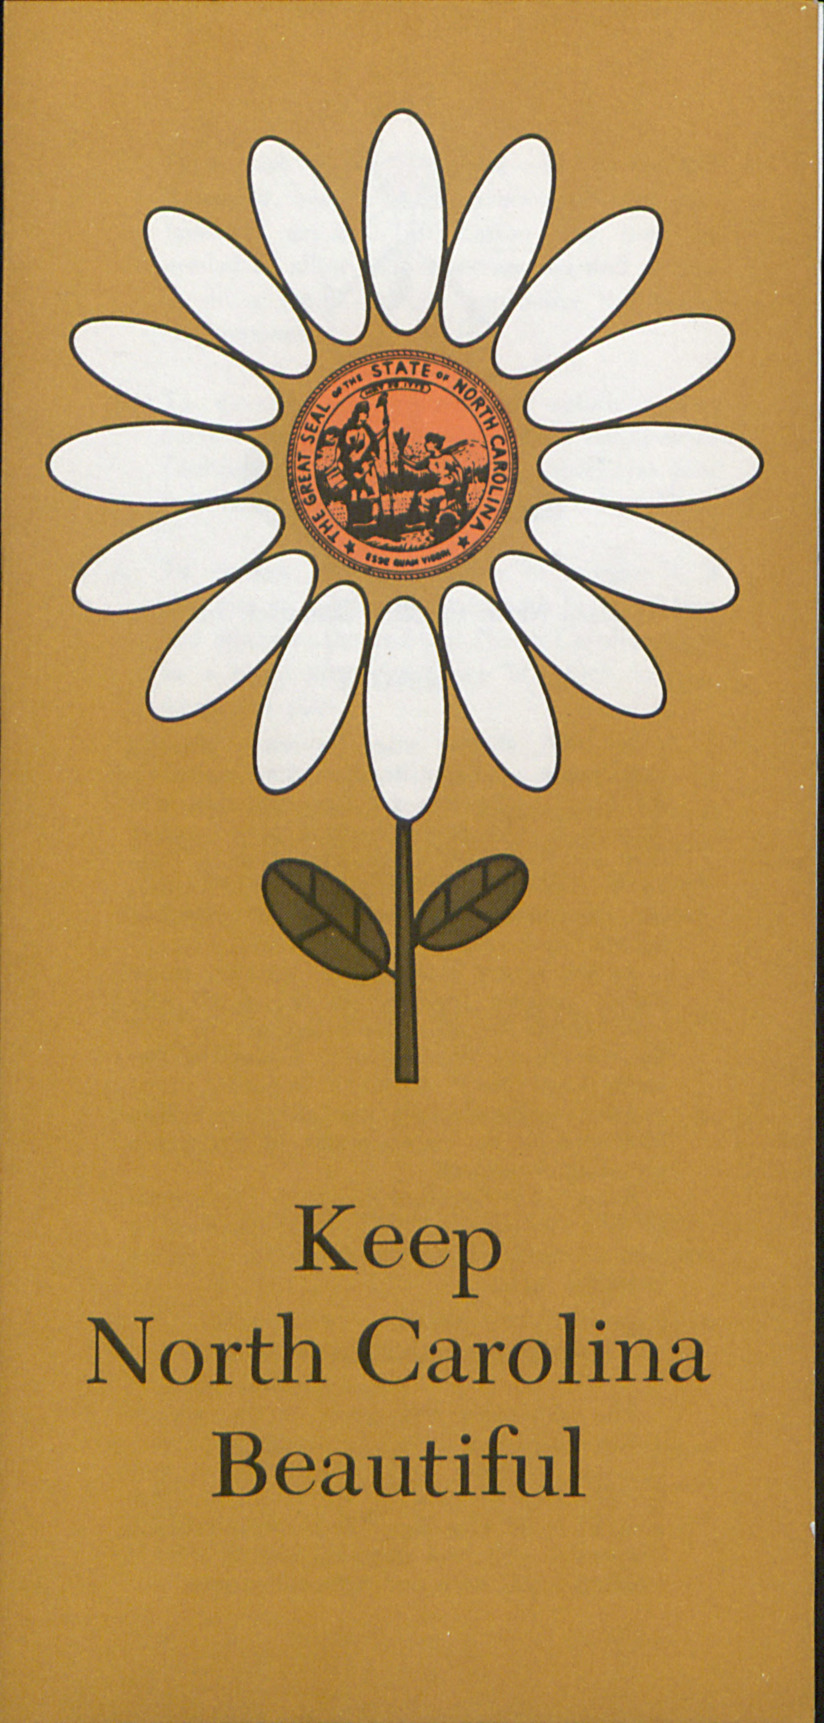 Keep North Carolina Beautiful :: Administrative Records